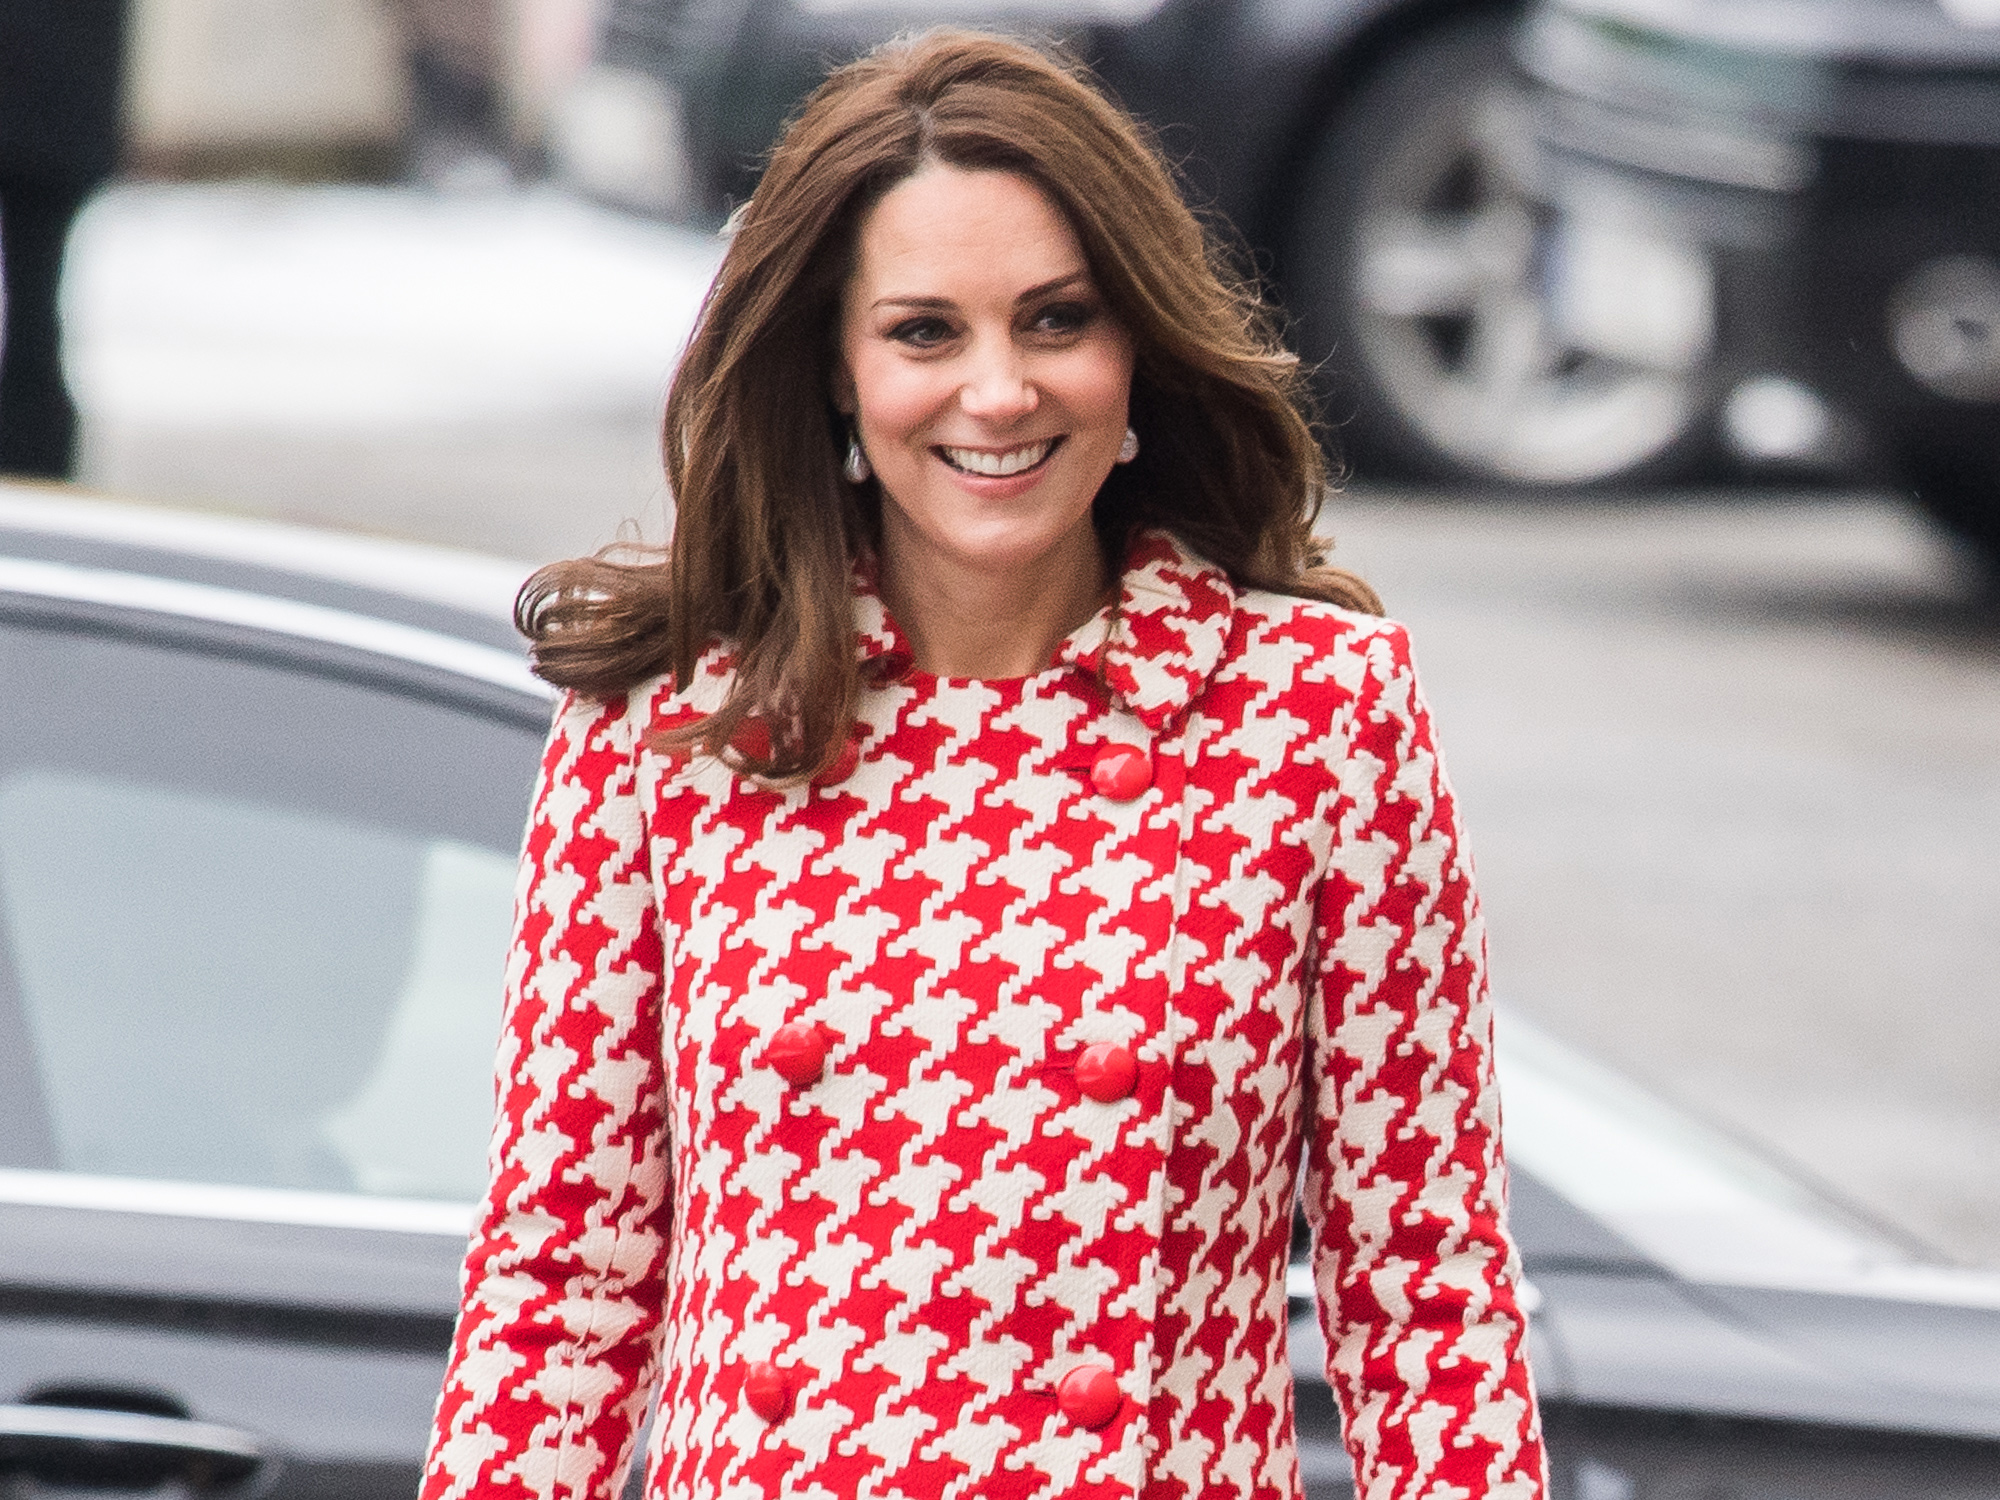 Kate Middleton defies black dress code at BAFTA